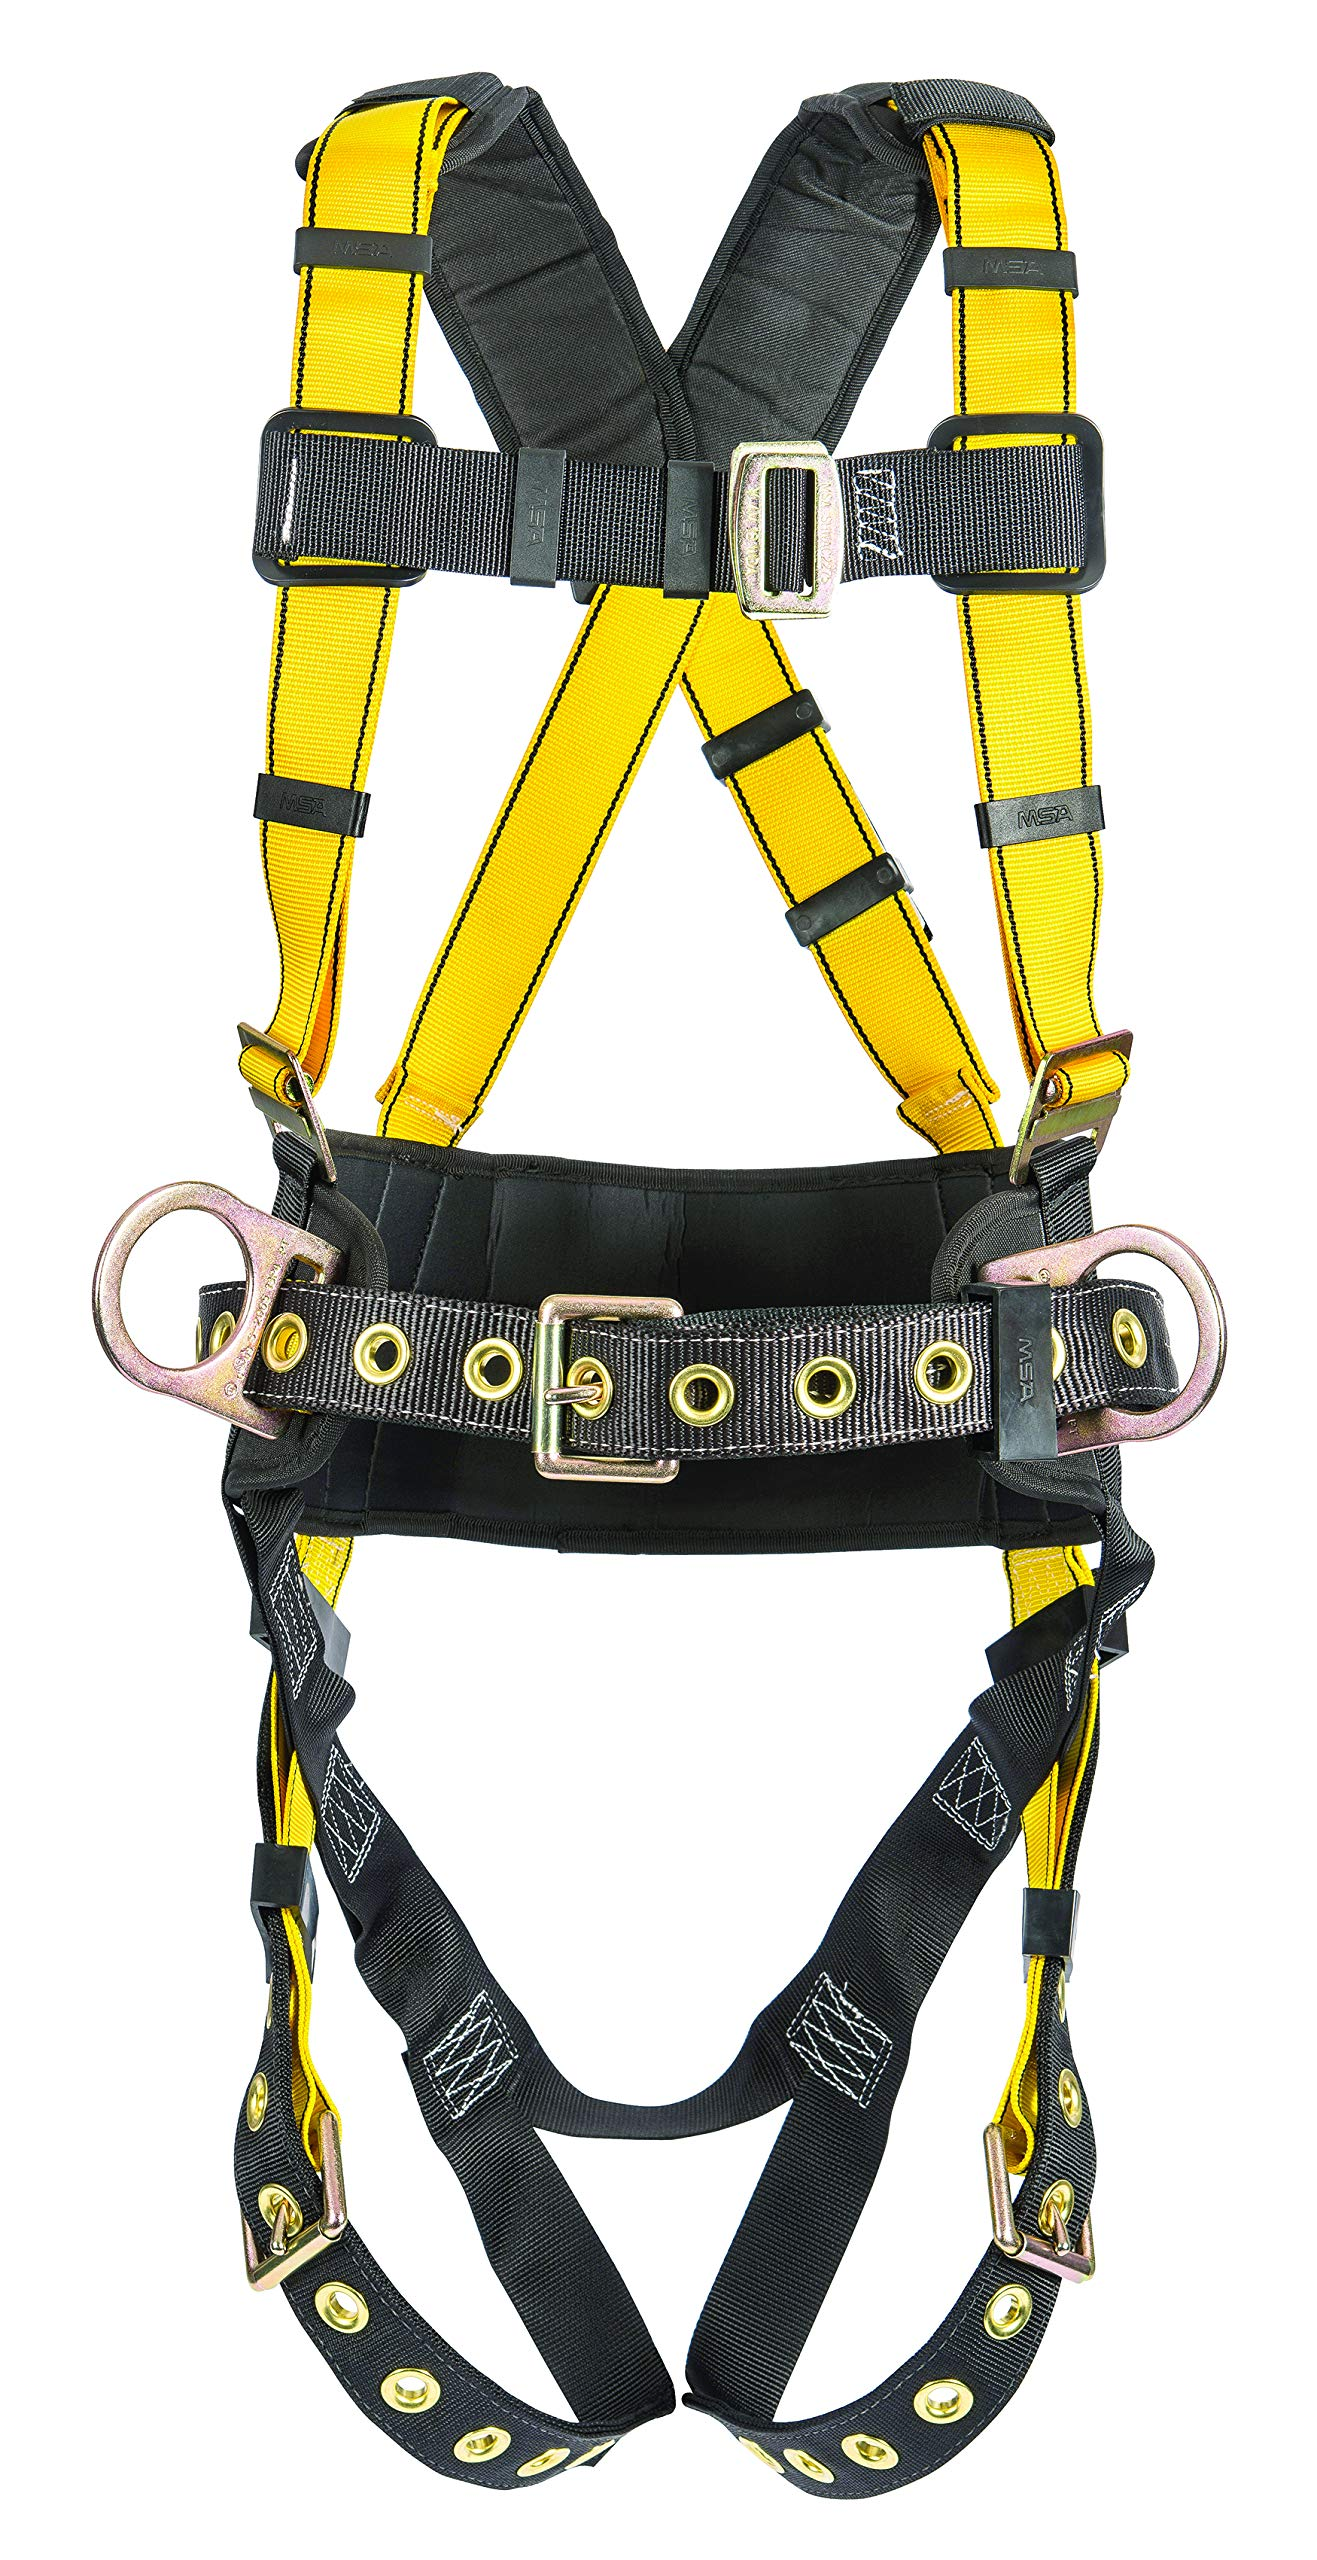 MSA 10077571 Workman Construction Harness with Back/Hip D-Rings, Tongue Buckle Leg Straps, Qwik-Fit Chest Strap Buckle, Integral Back Pad, Tool Belt and Shoulder Pads, Standard by MSA (Image #2)